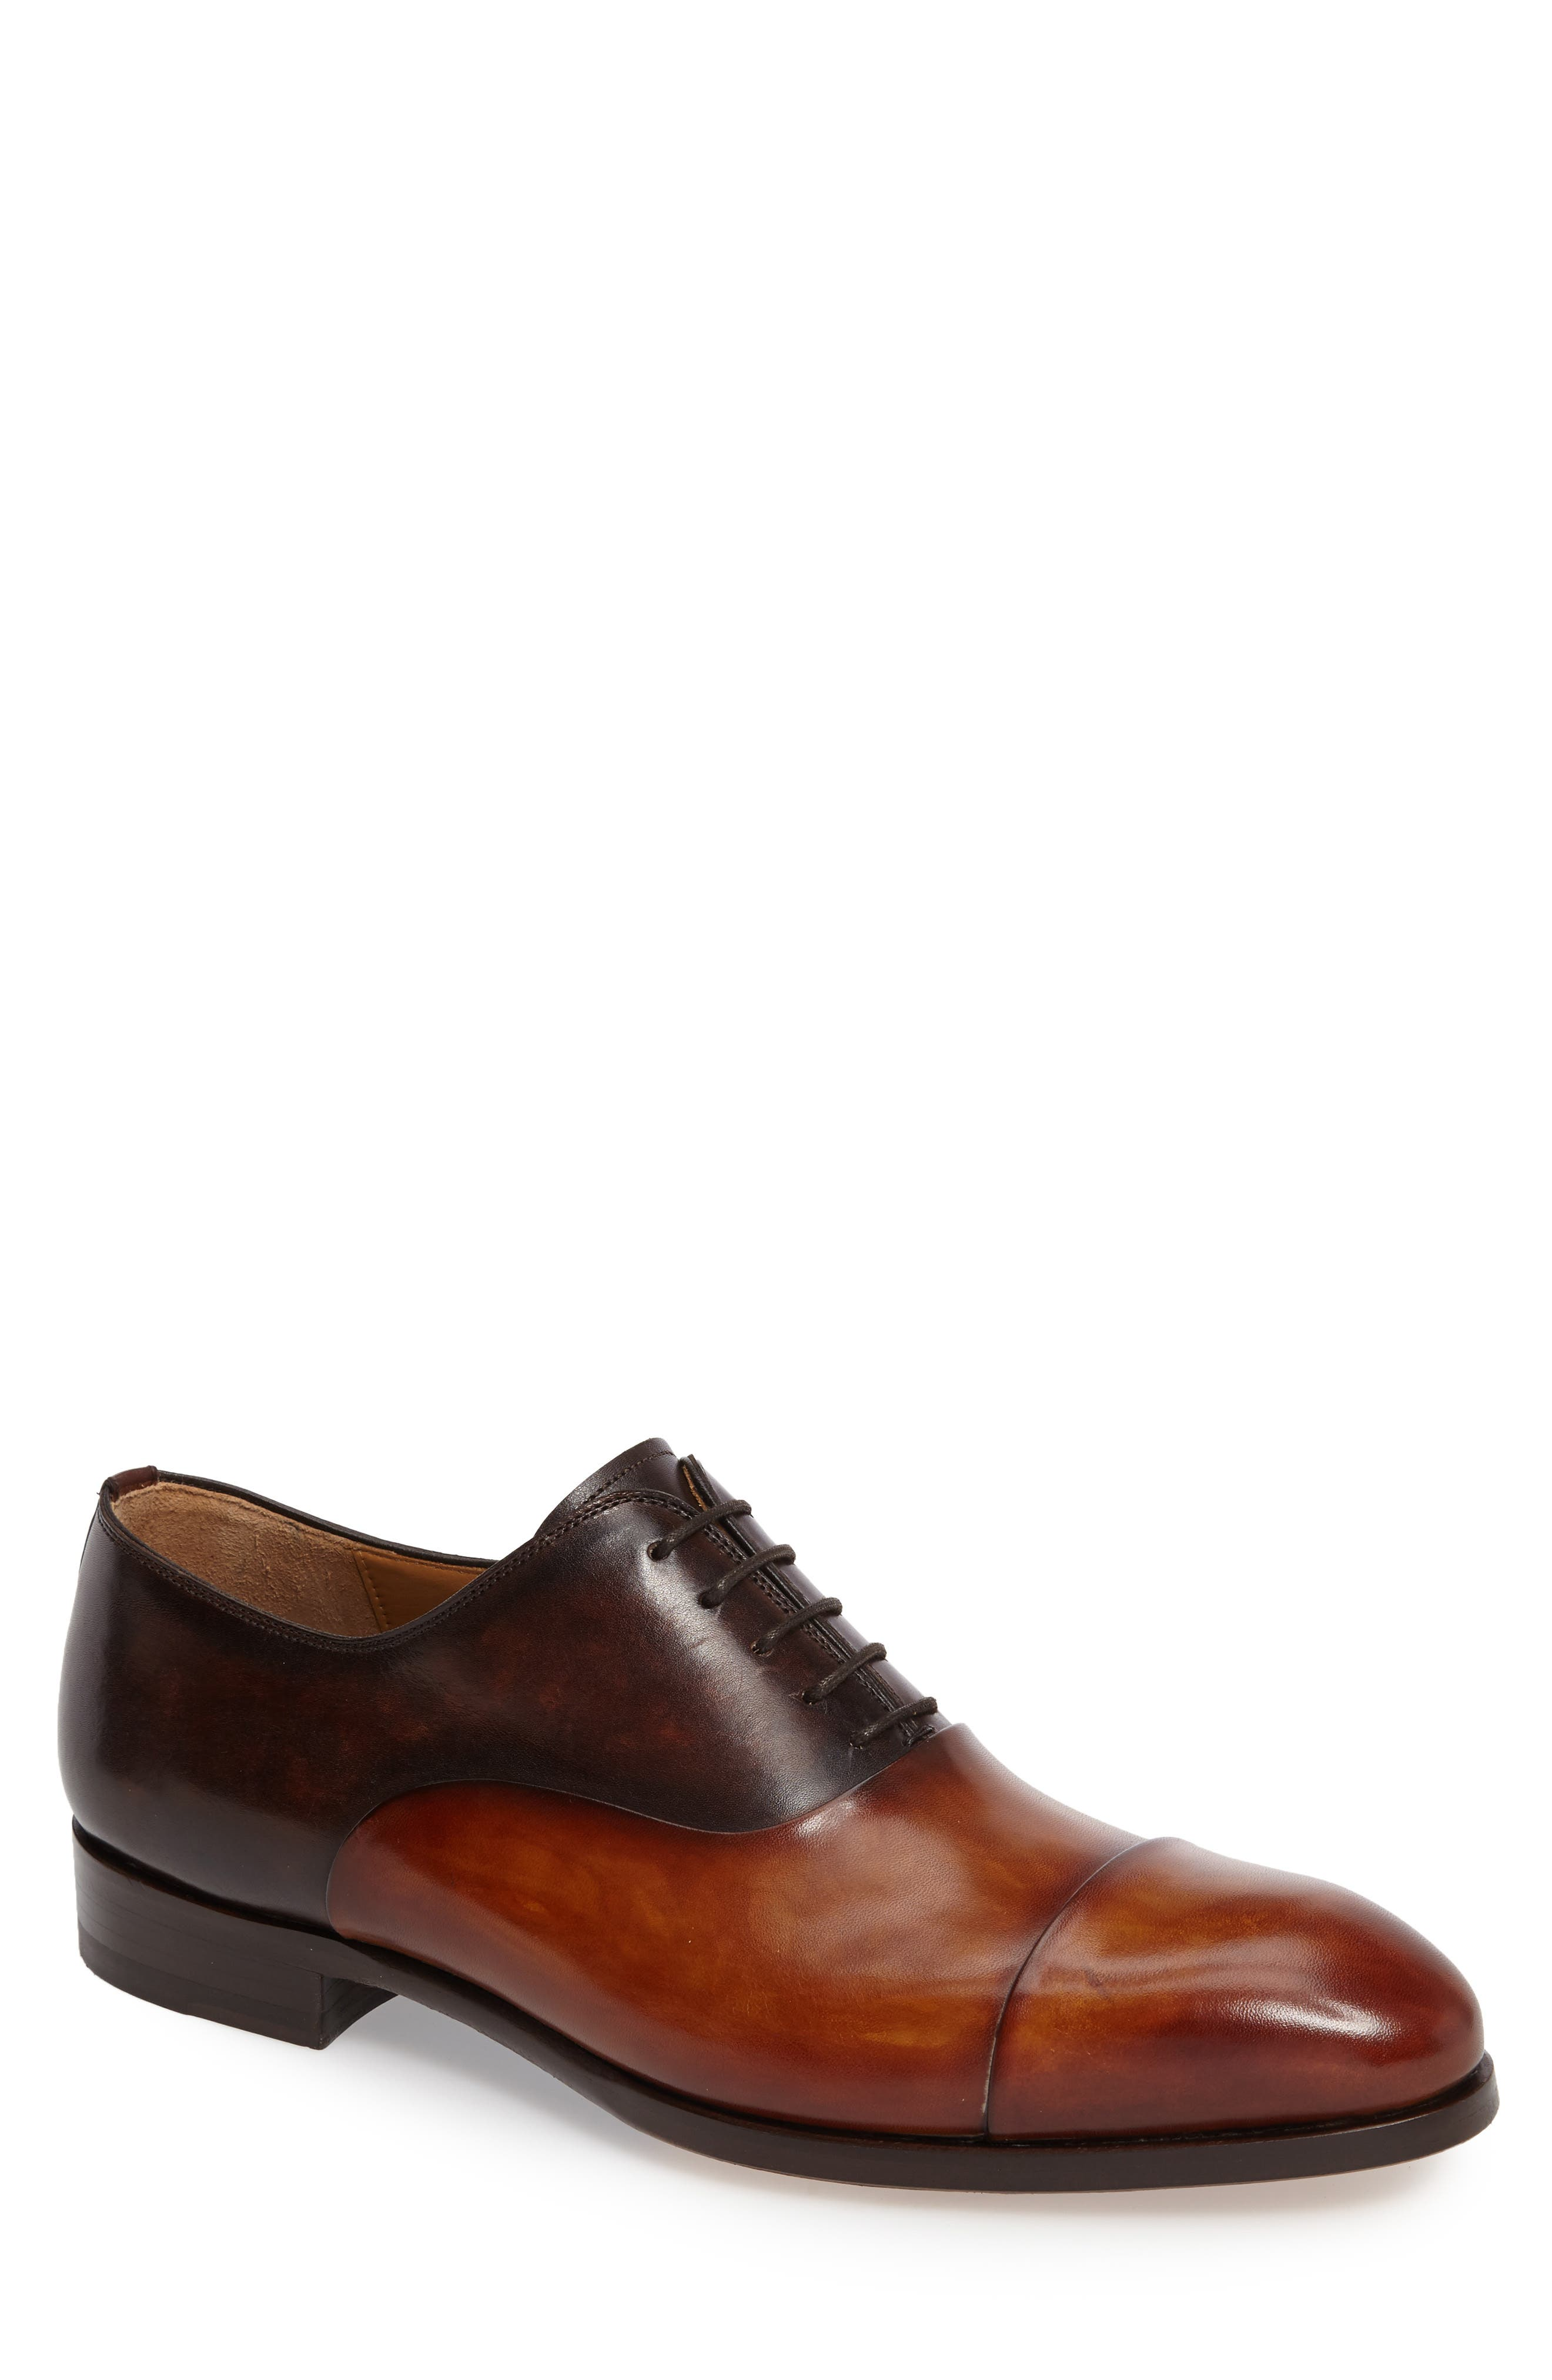 Golay Cap Toe Oxford,                             Main thumbnail 1, color,                             CUERO LEATHER